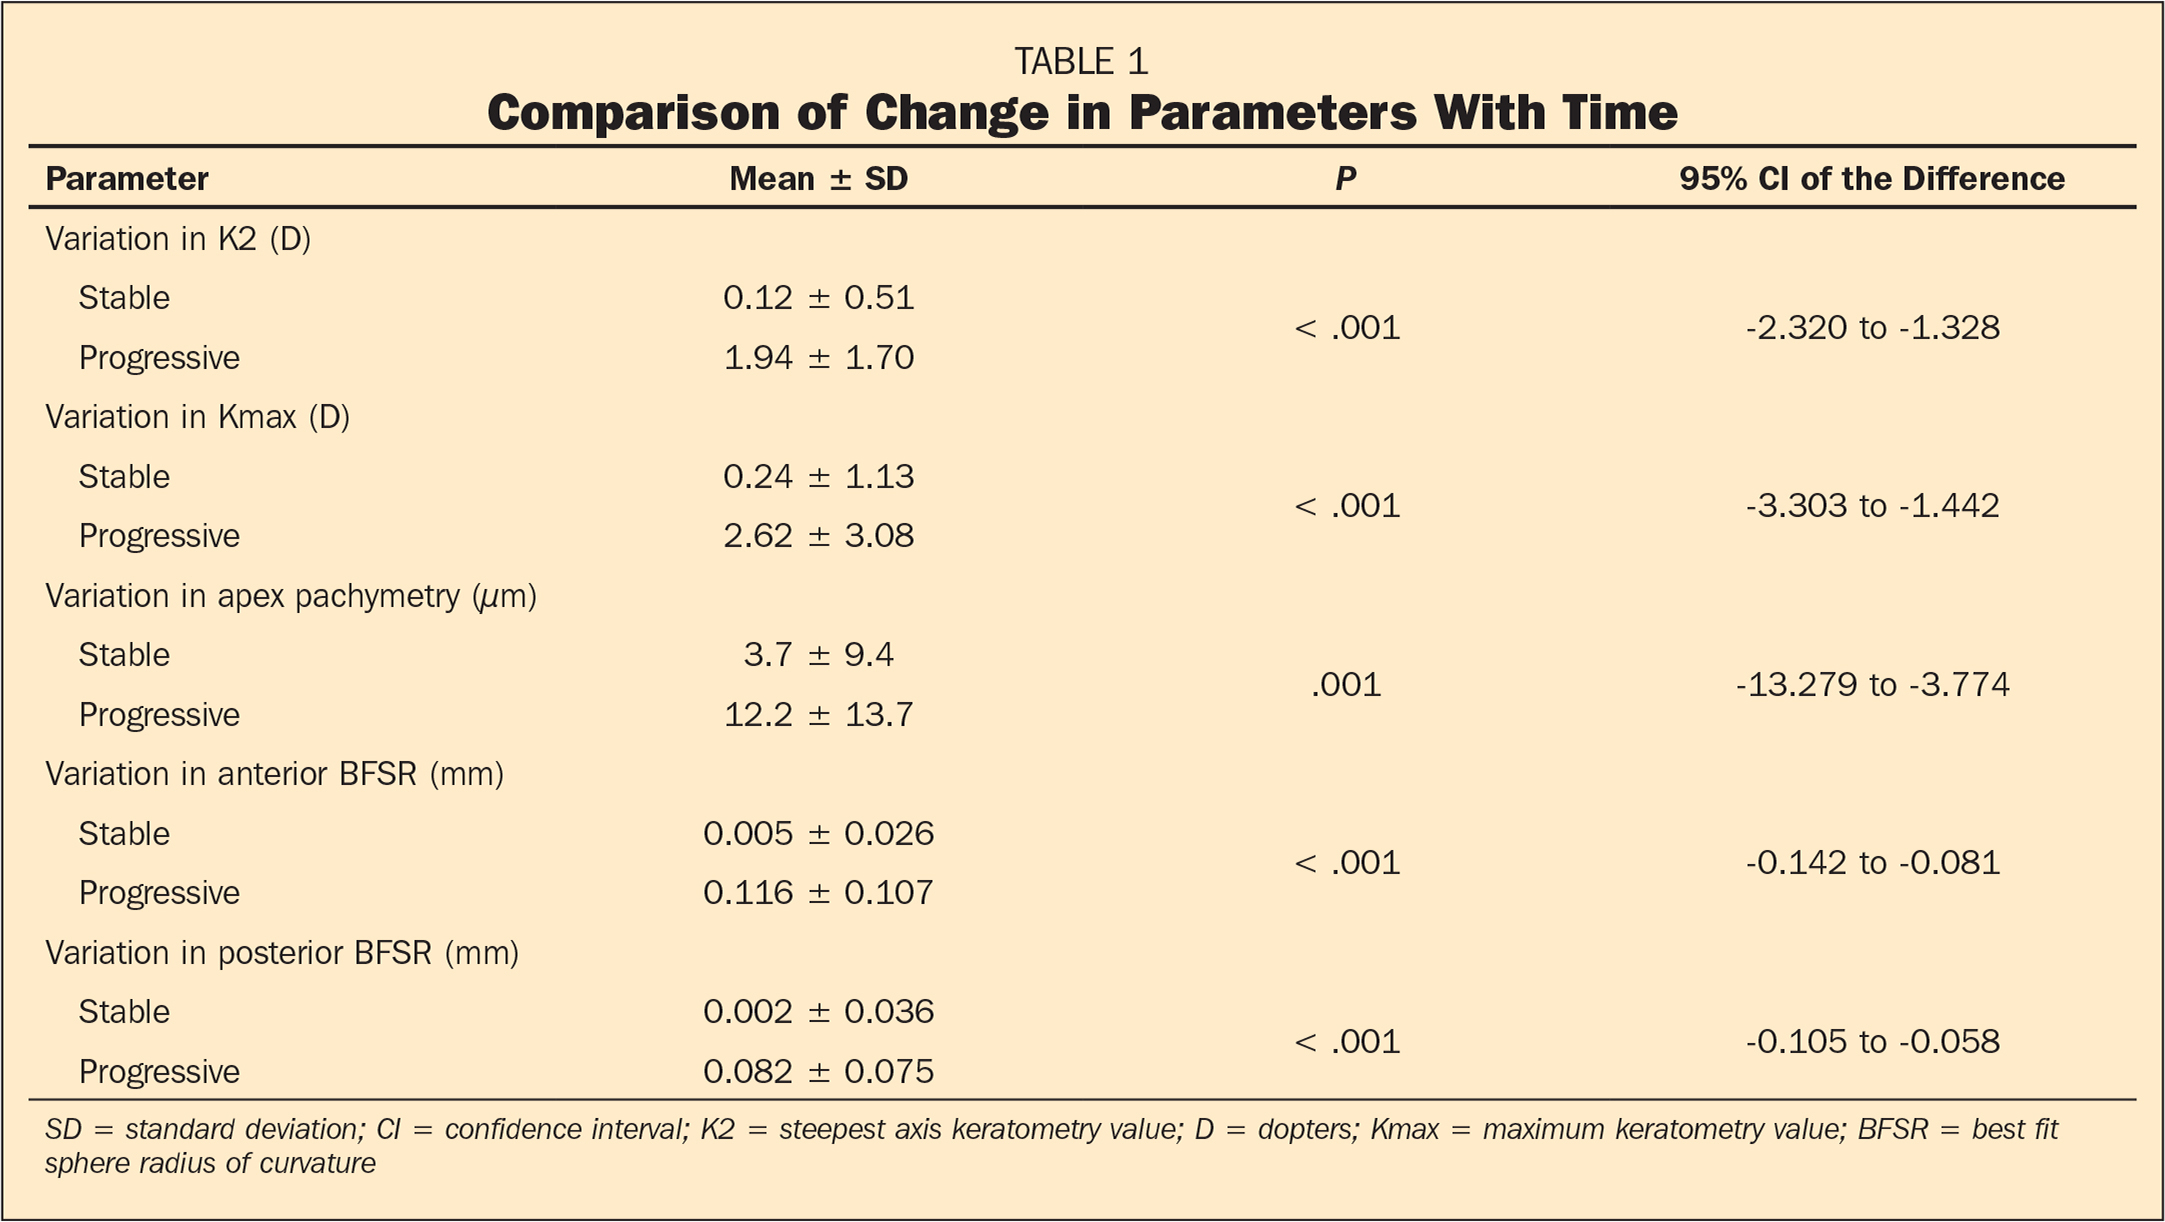 Comparison of Change in Parameters With Time